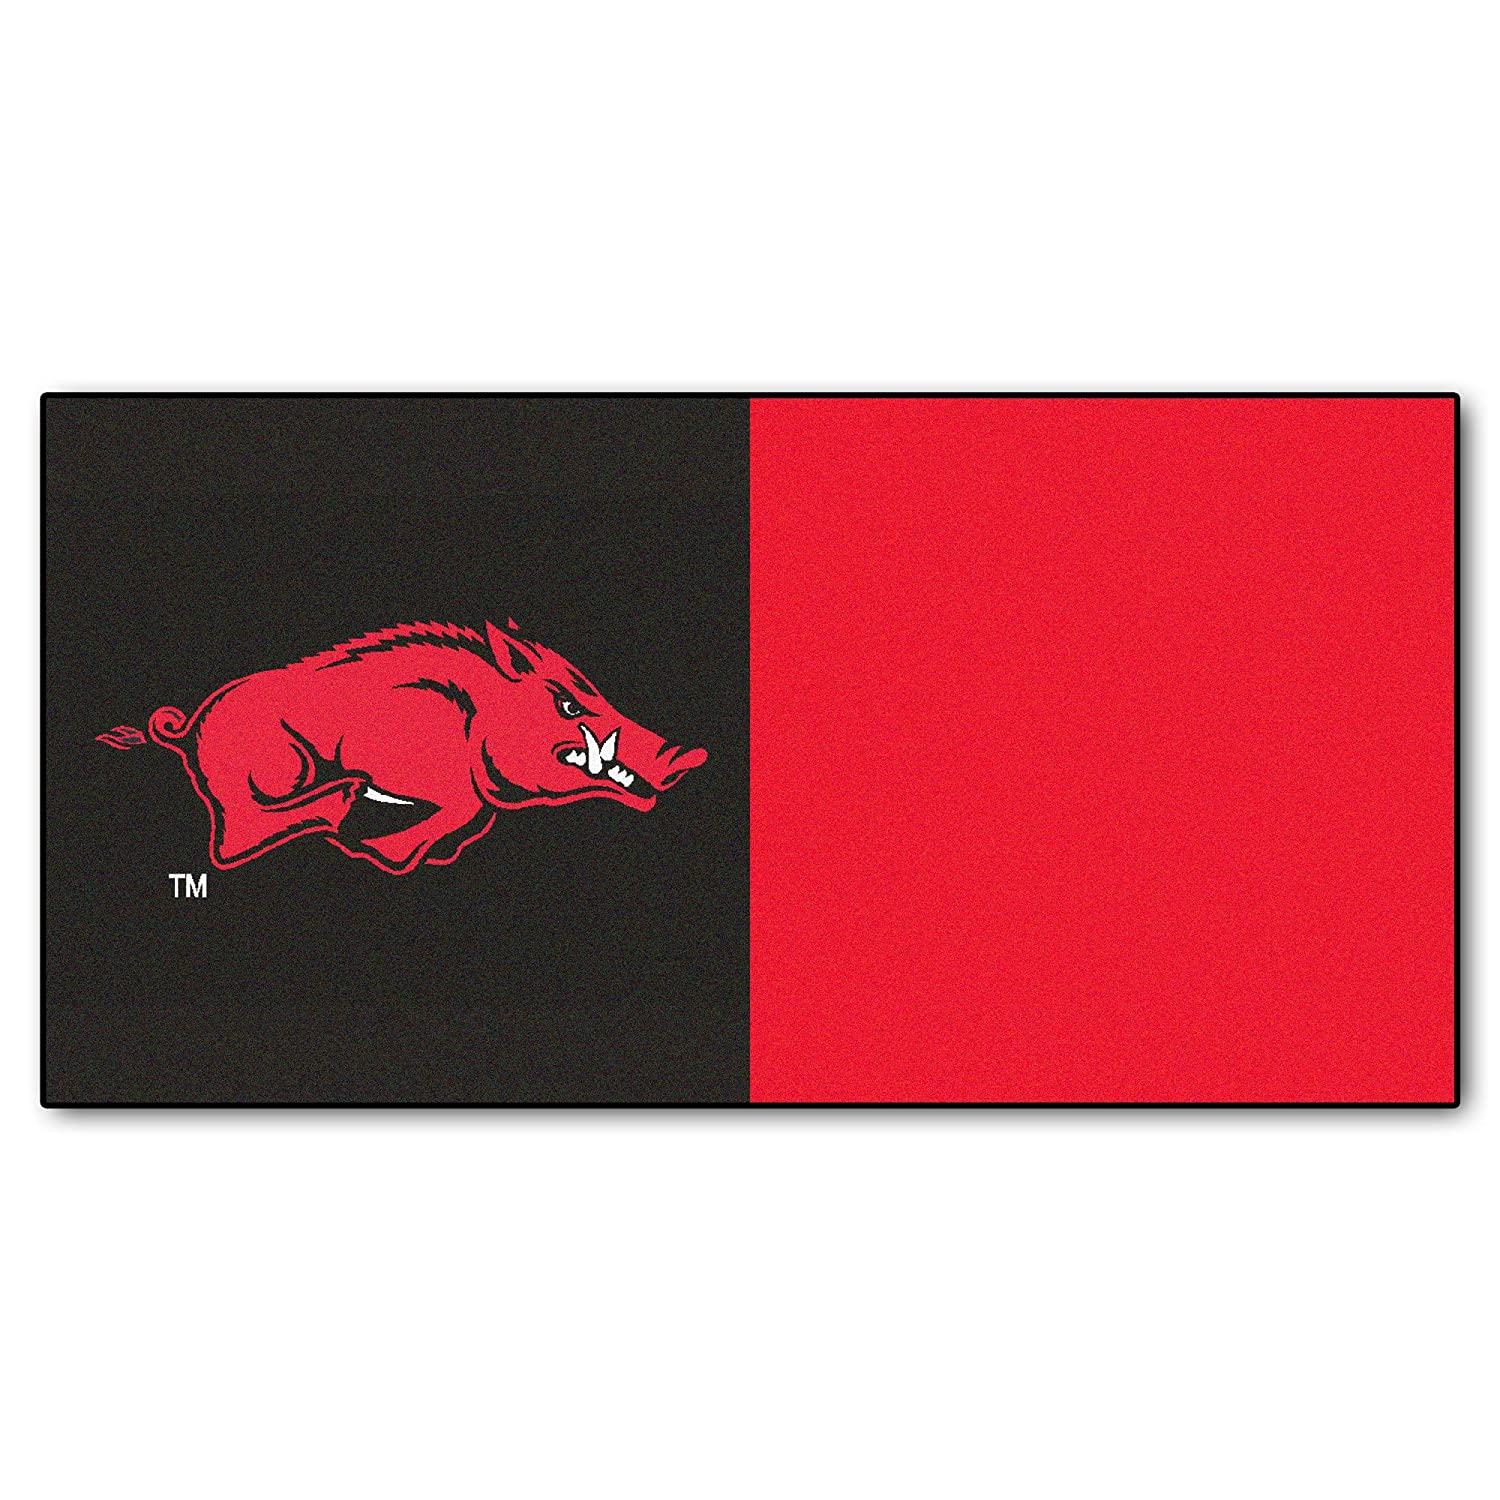 Fanmats Arkansas Razorbacks Team Carpet Tiles 8526